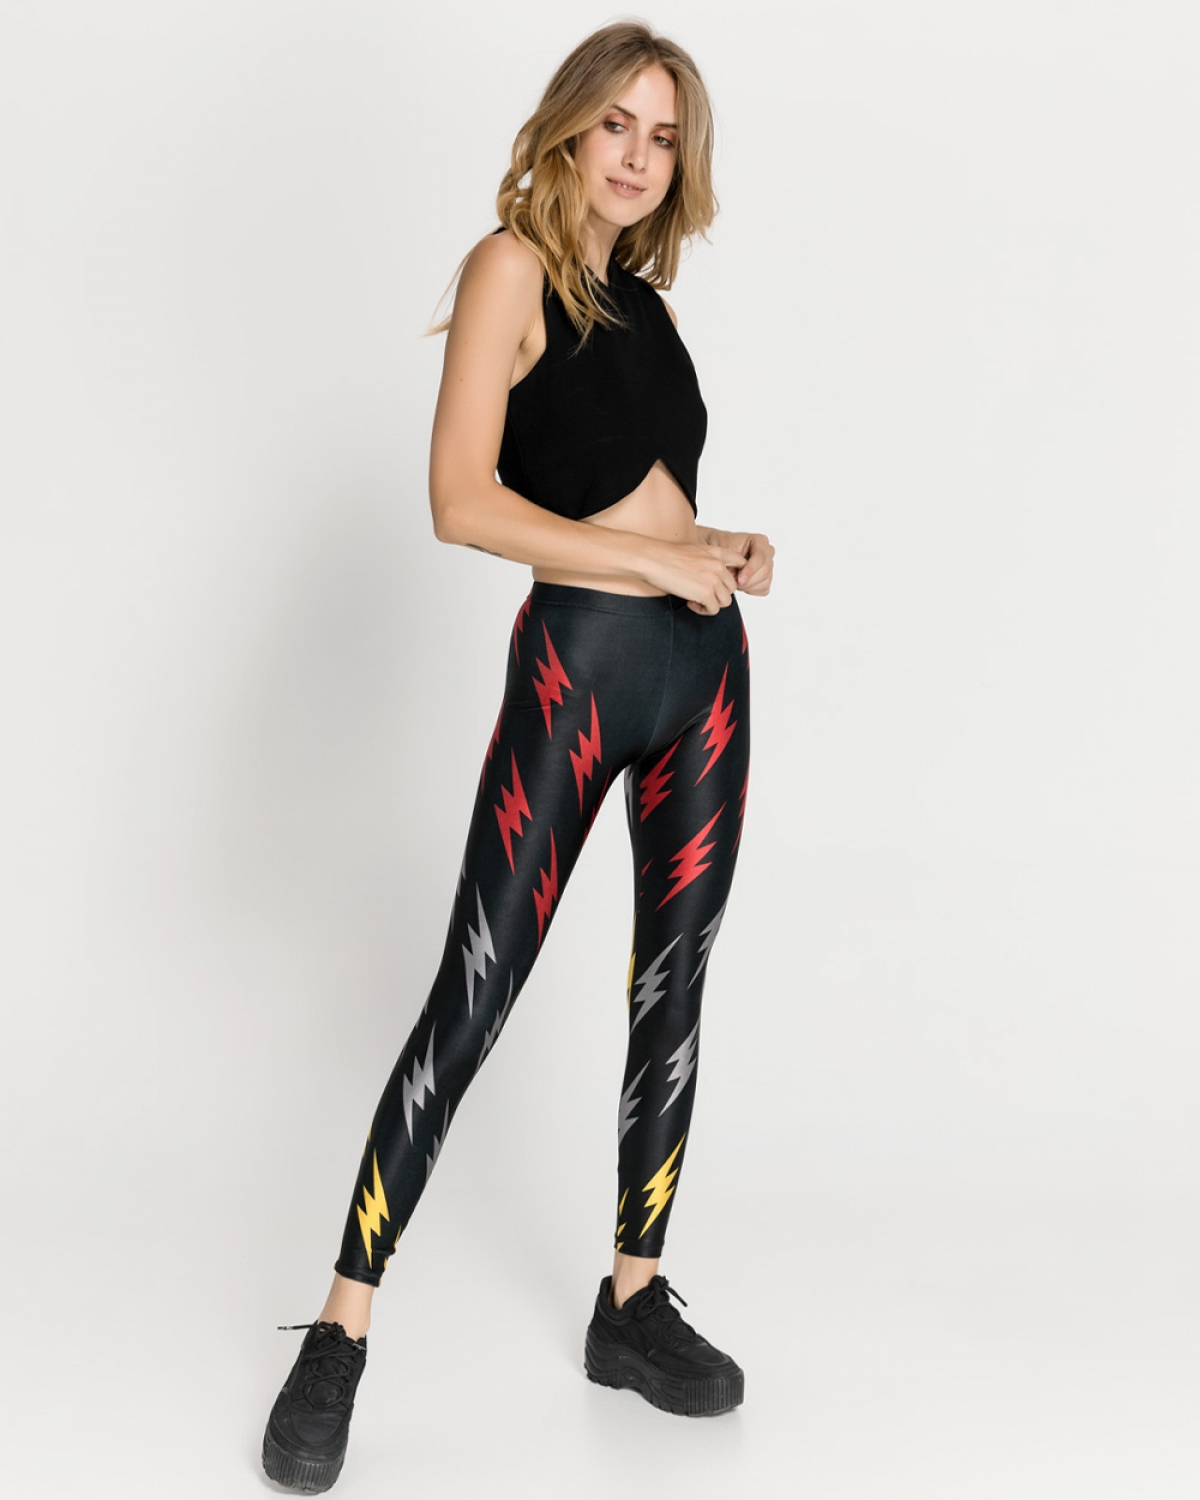 Thunders Color Strike Leggings